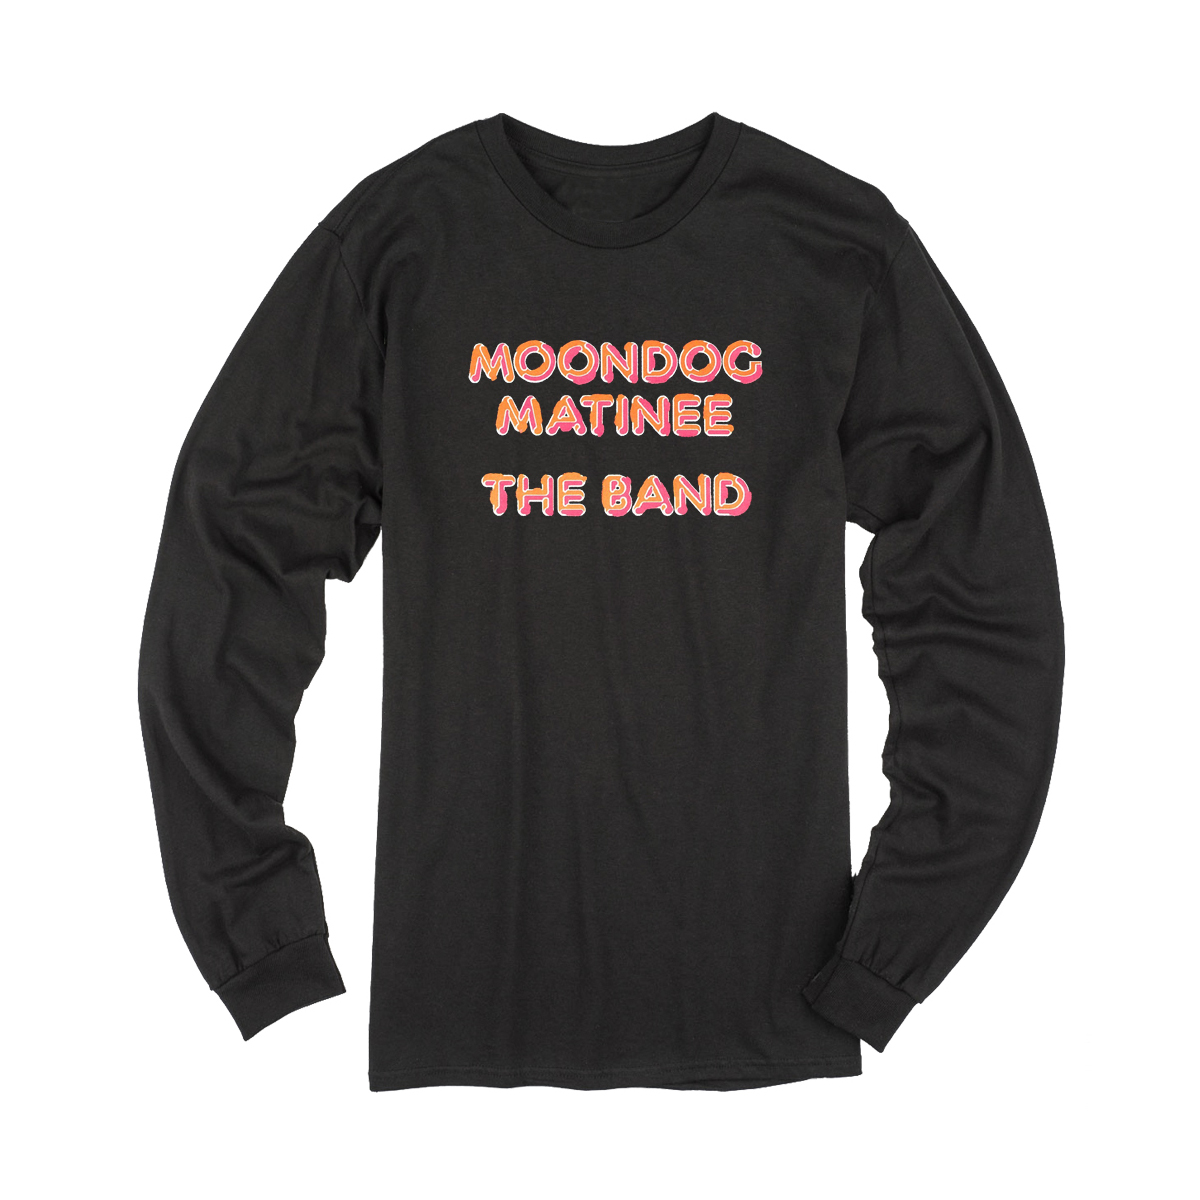 The Band Moondog Matinee Long Sleeve Tee